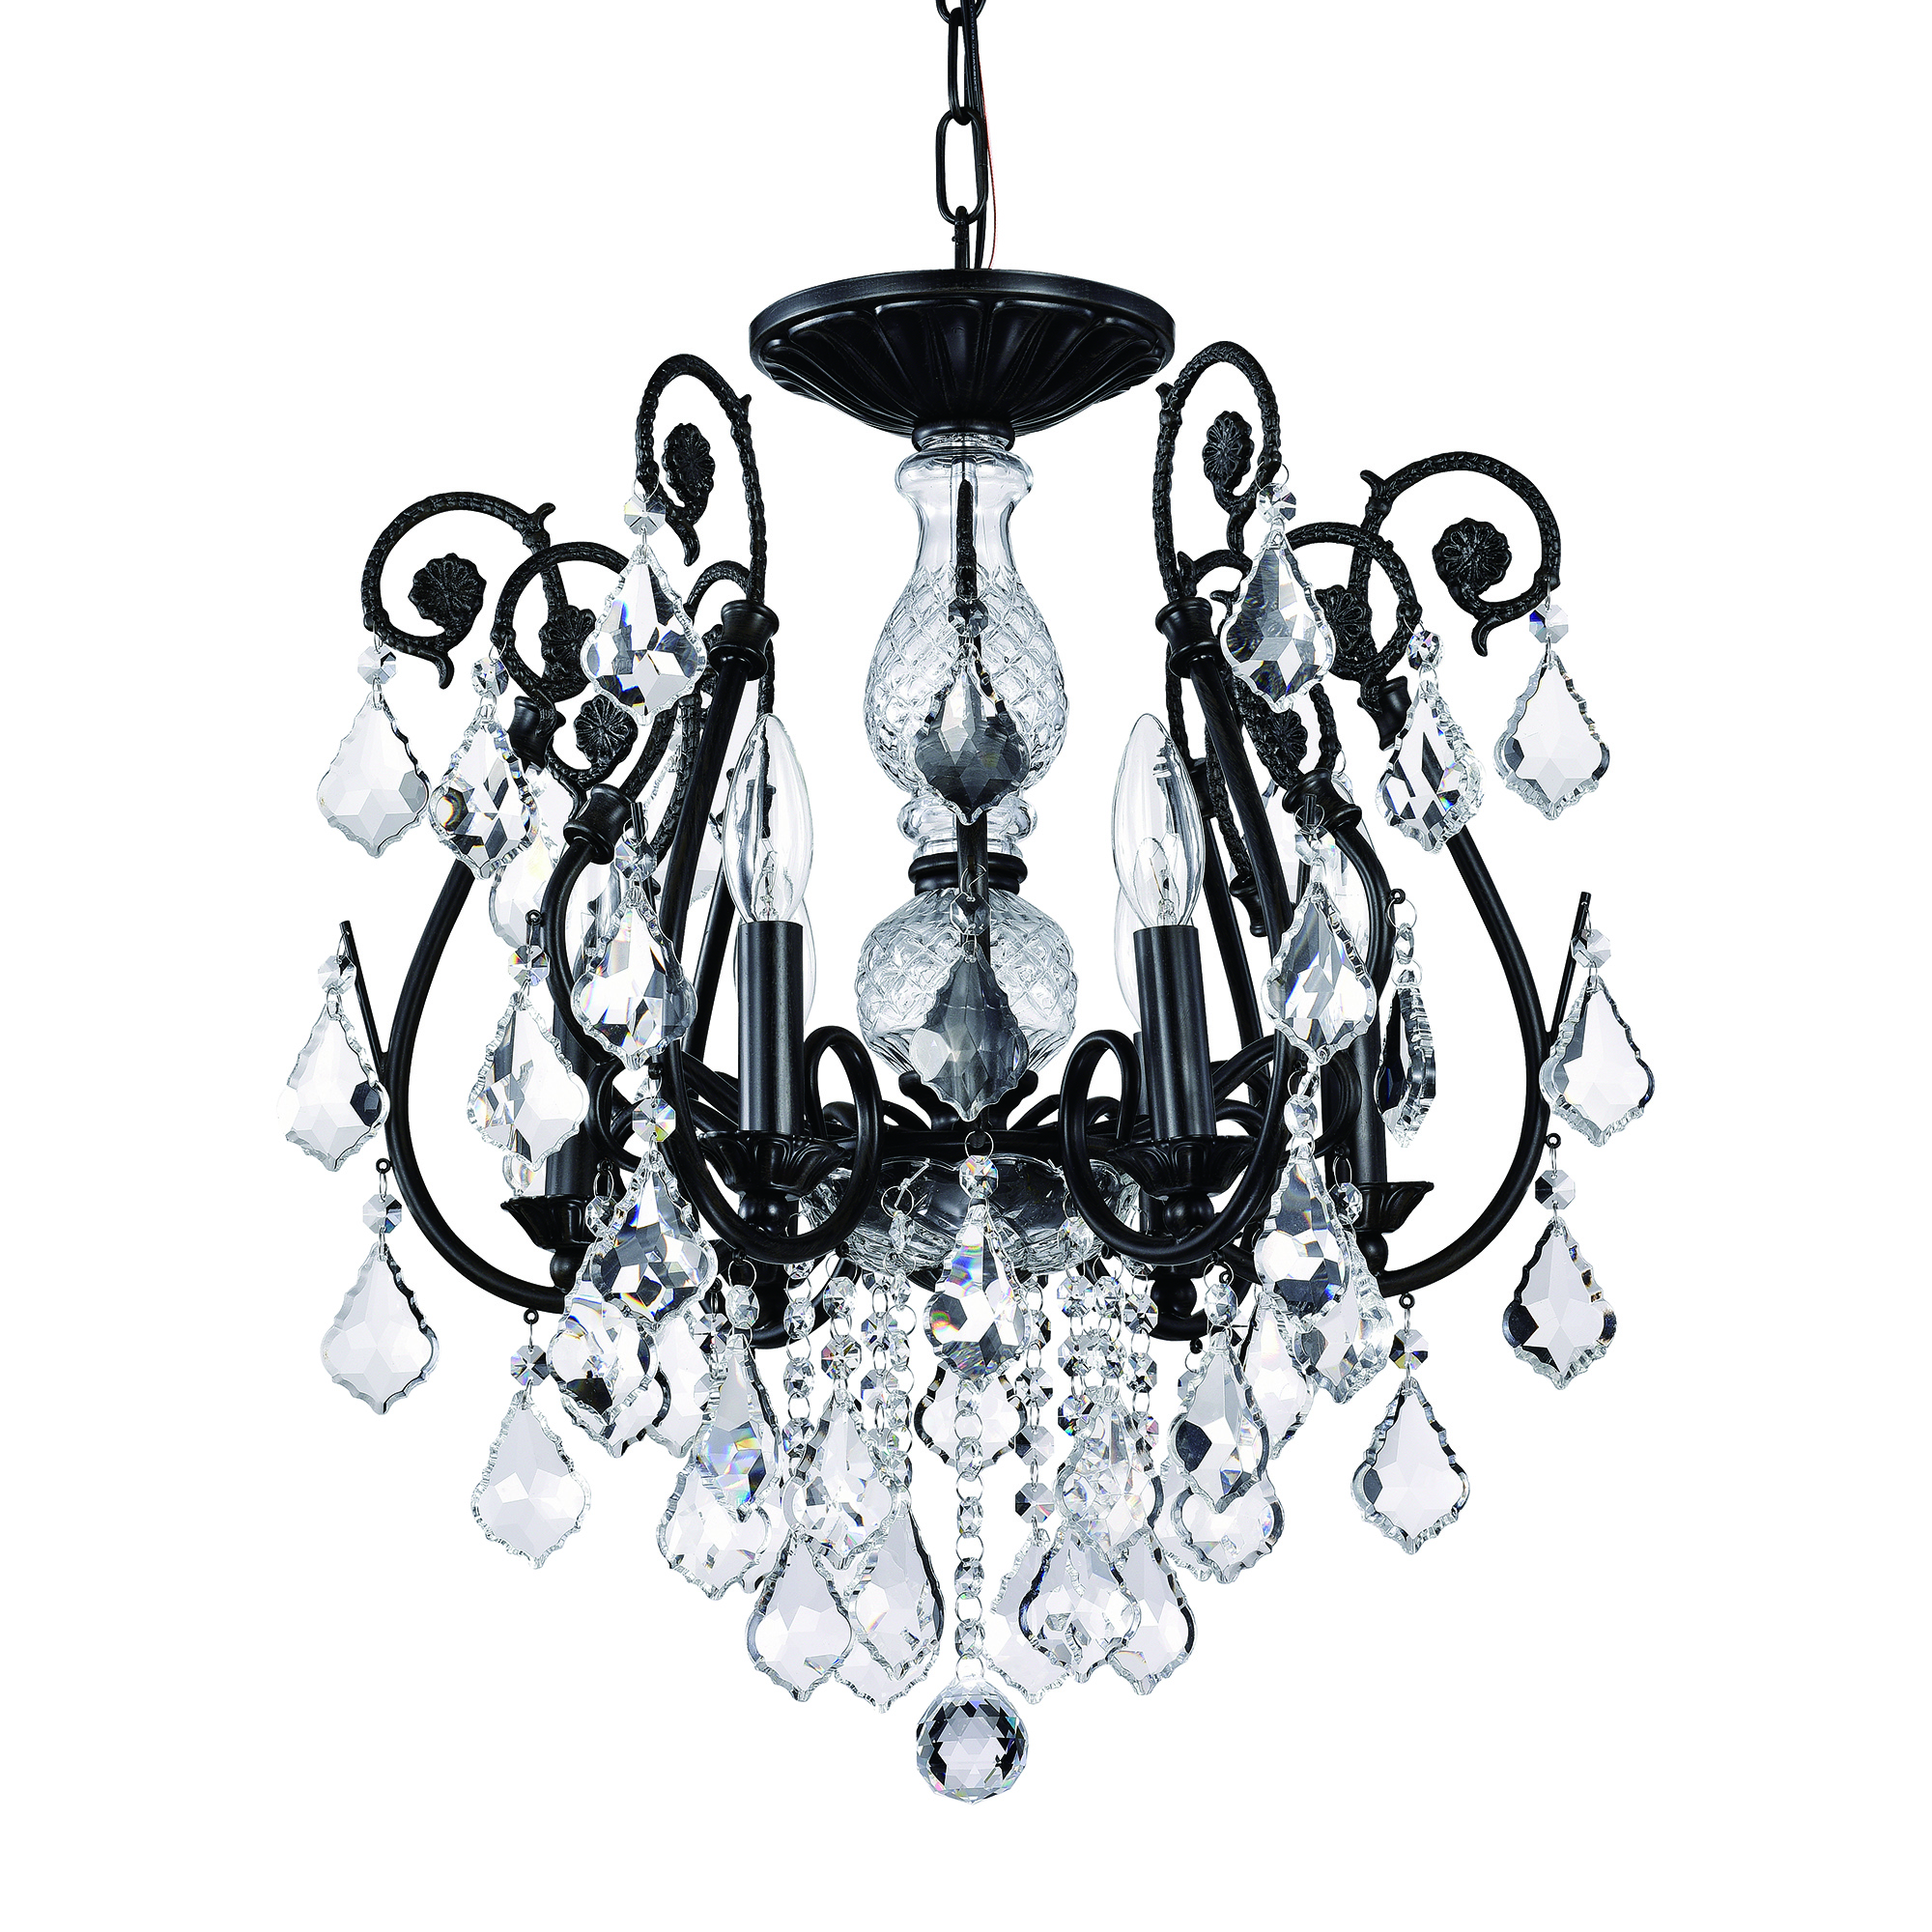 6 Light Antique Black Finish Chandelier Wrought Iron